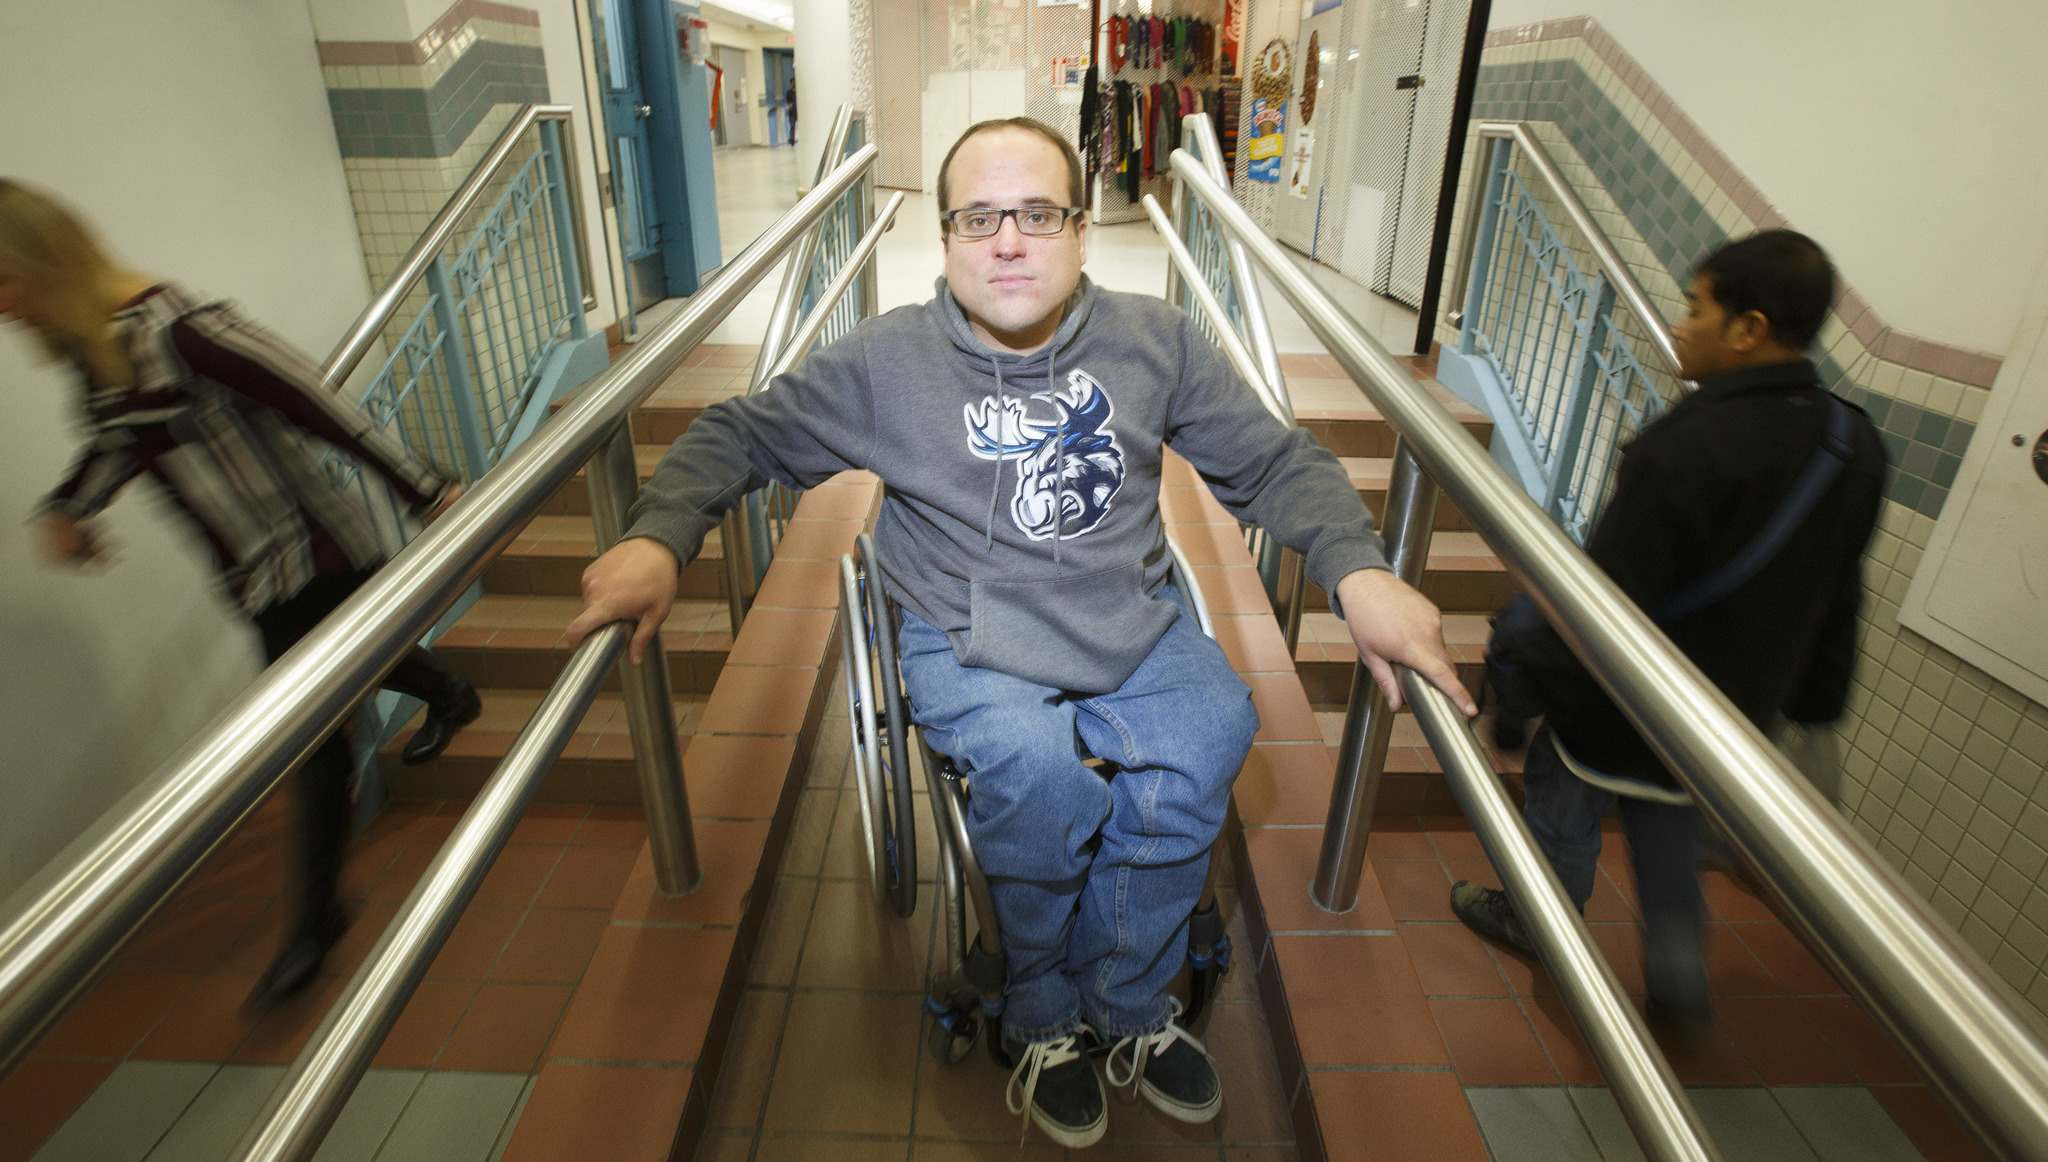 Allen Mankewich has been vocal in the past when lifts in the concourse under Portage and Main have been out of service for long periods of time. (Mike Deal / Winnipeg Free Press)